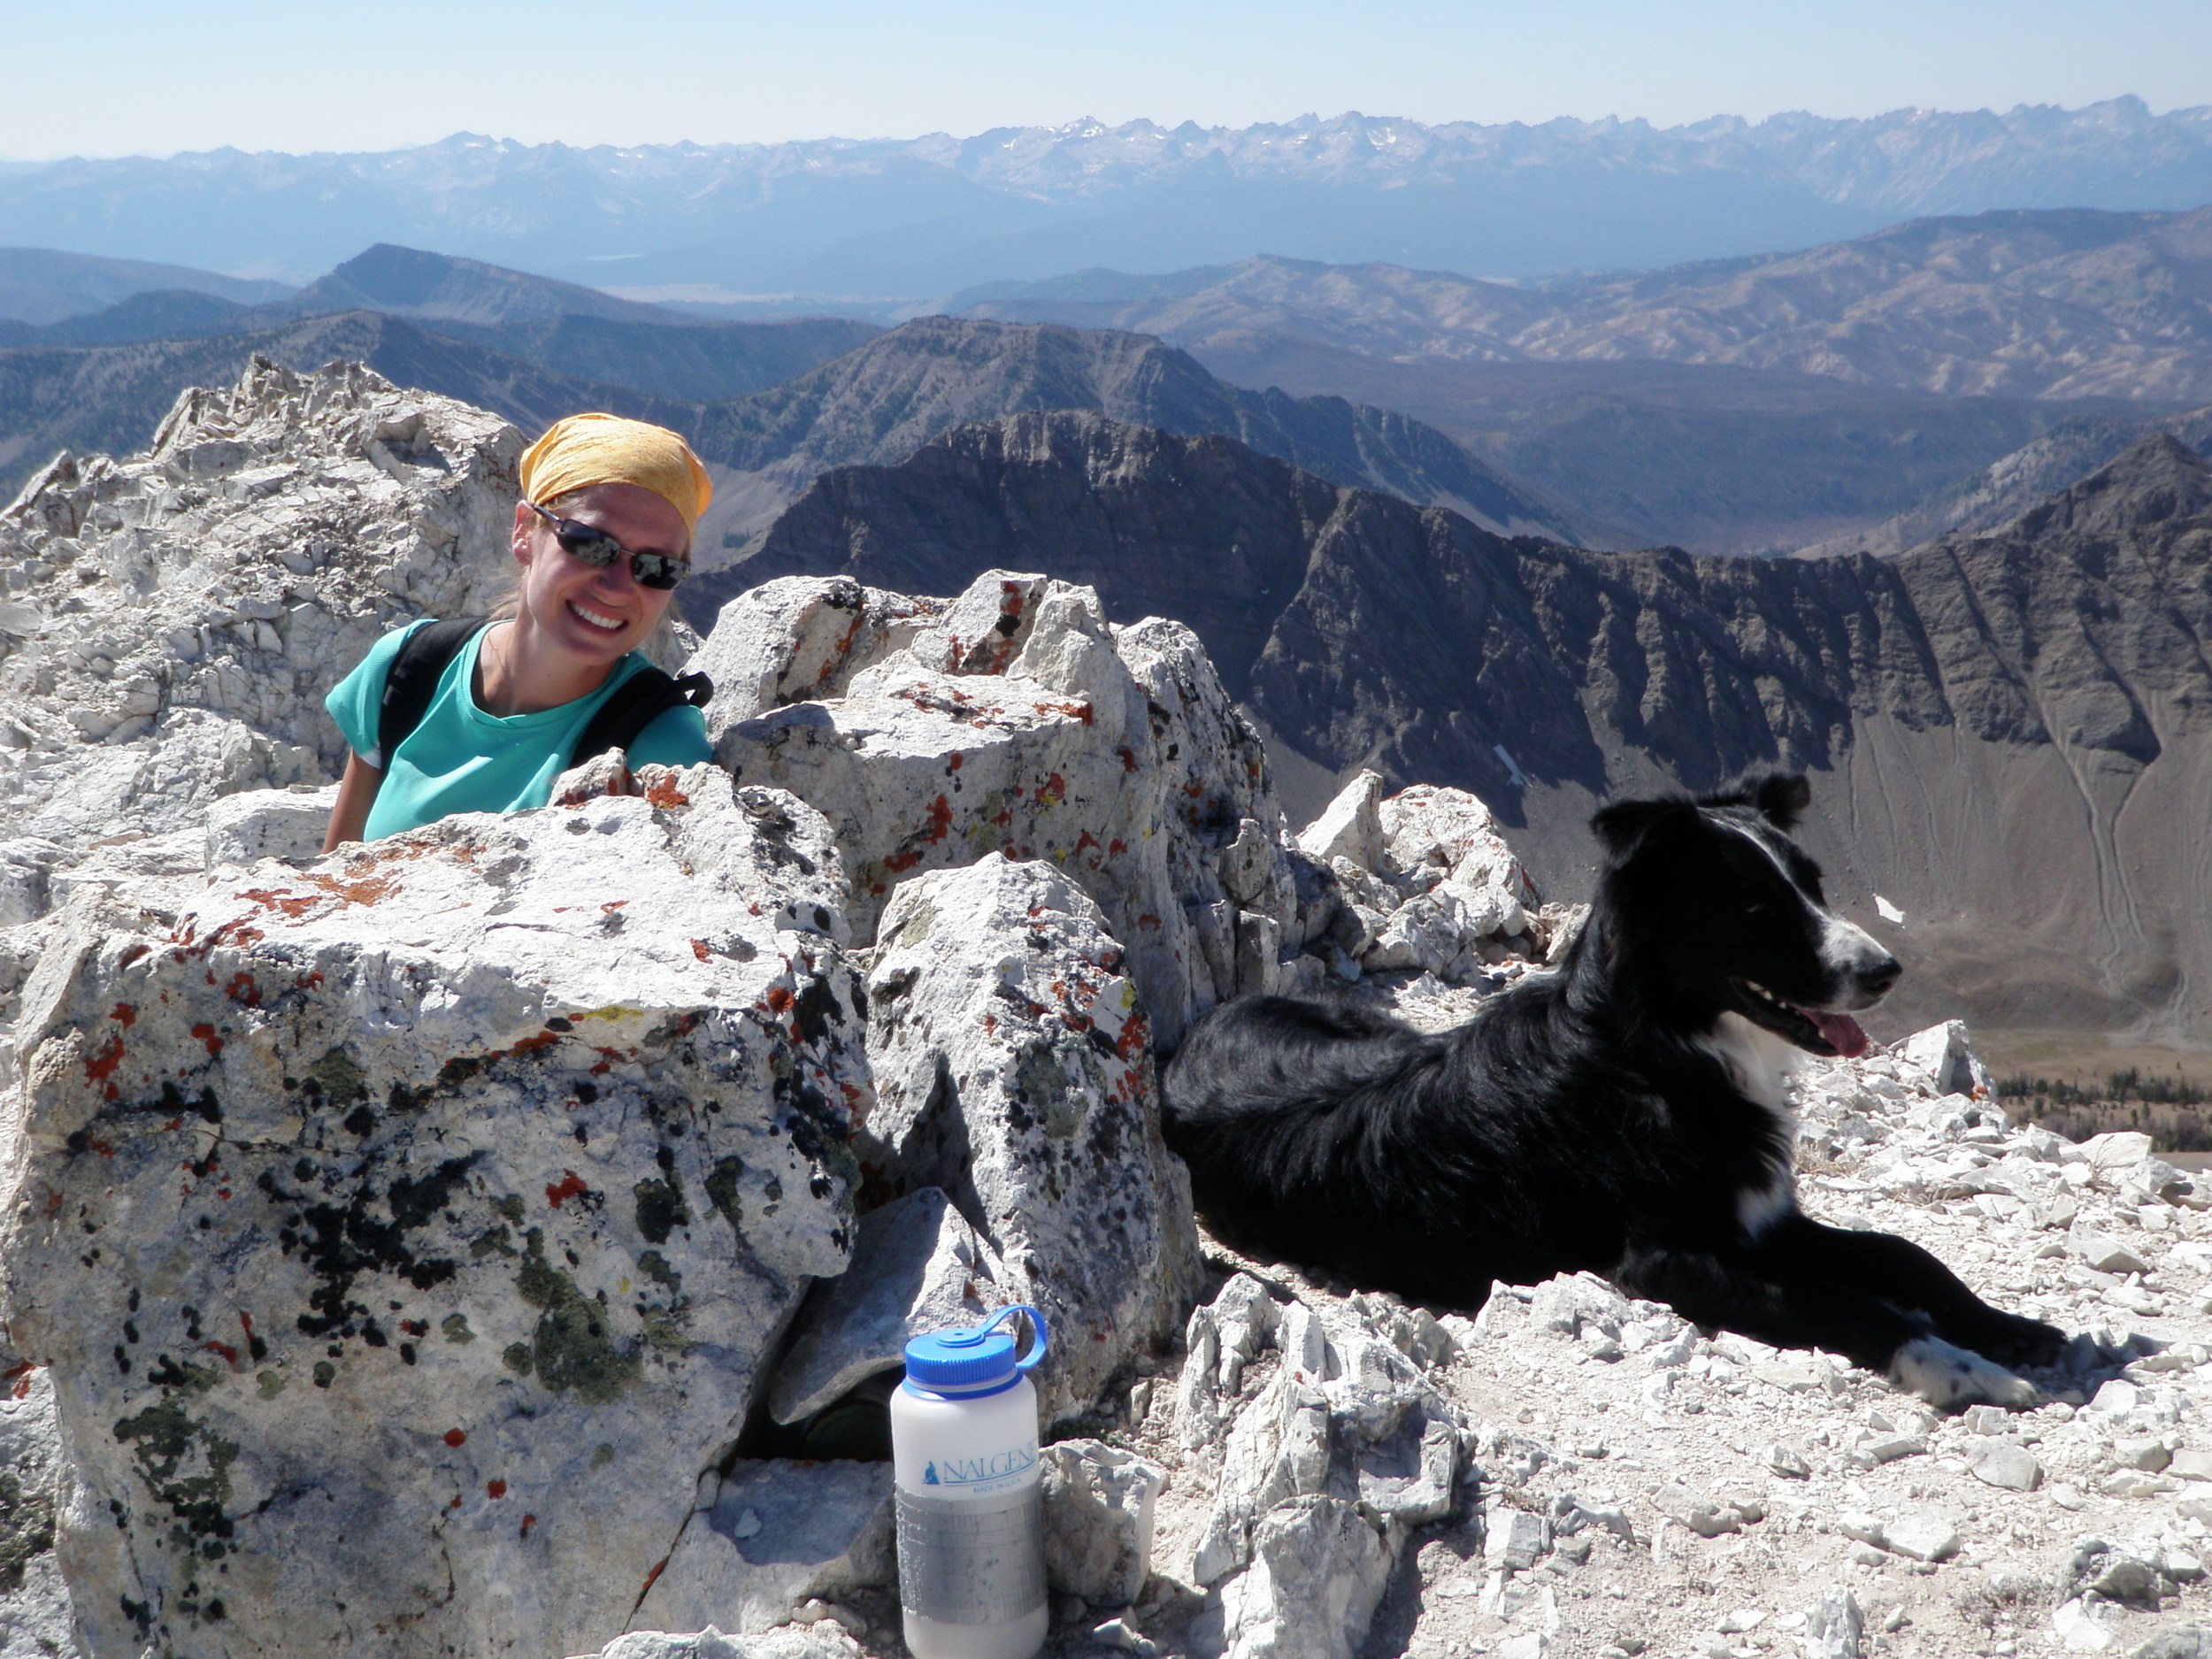 Betsie & Laddi at 11,200 feet in the Boulder White Clouds